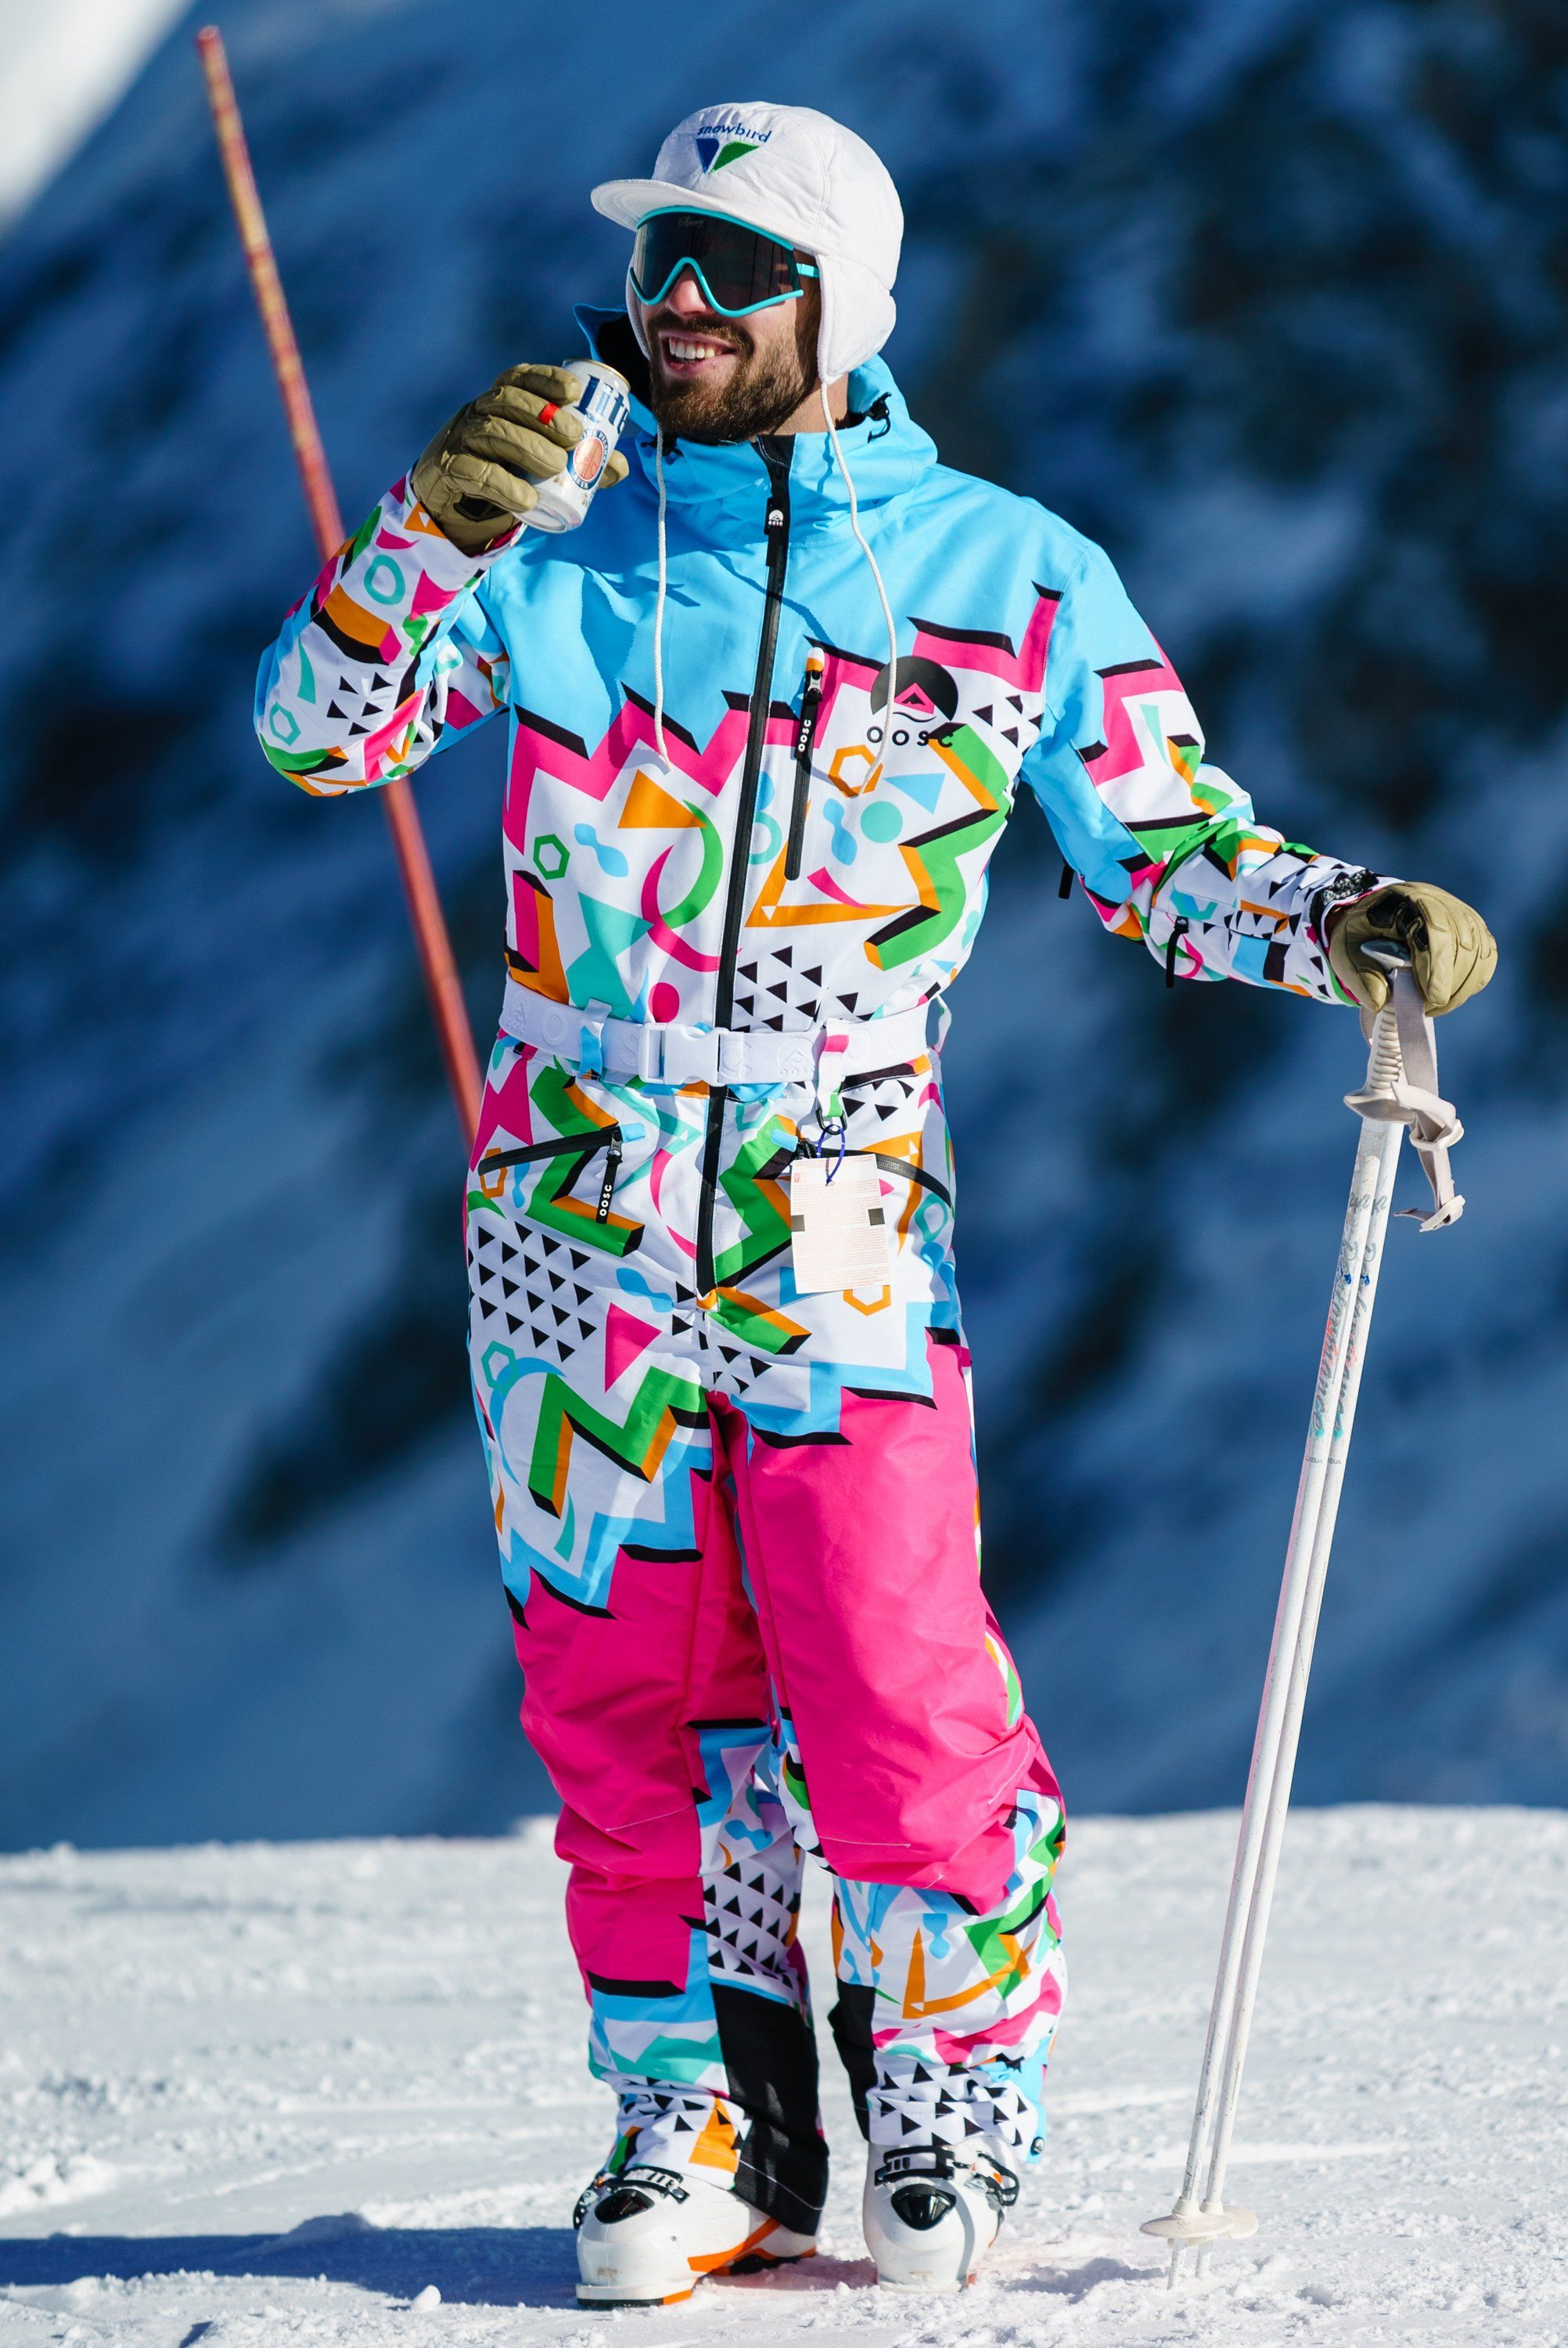 Shop The Geodisiac Men S Retro Print Ski Suit Made With 10k Waterproof Material To Keep You Warm On The Cold One Skiing Outfit Retro Ski Suit Mens Ski Clothes